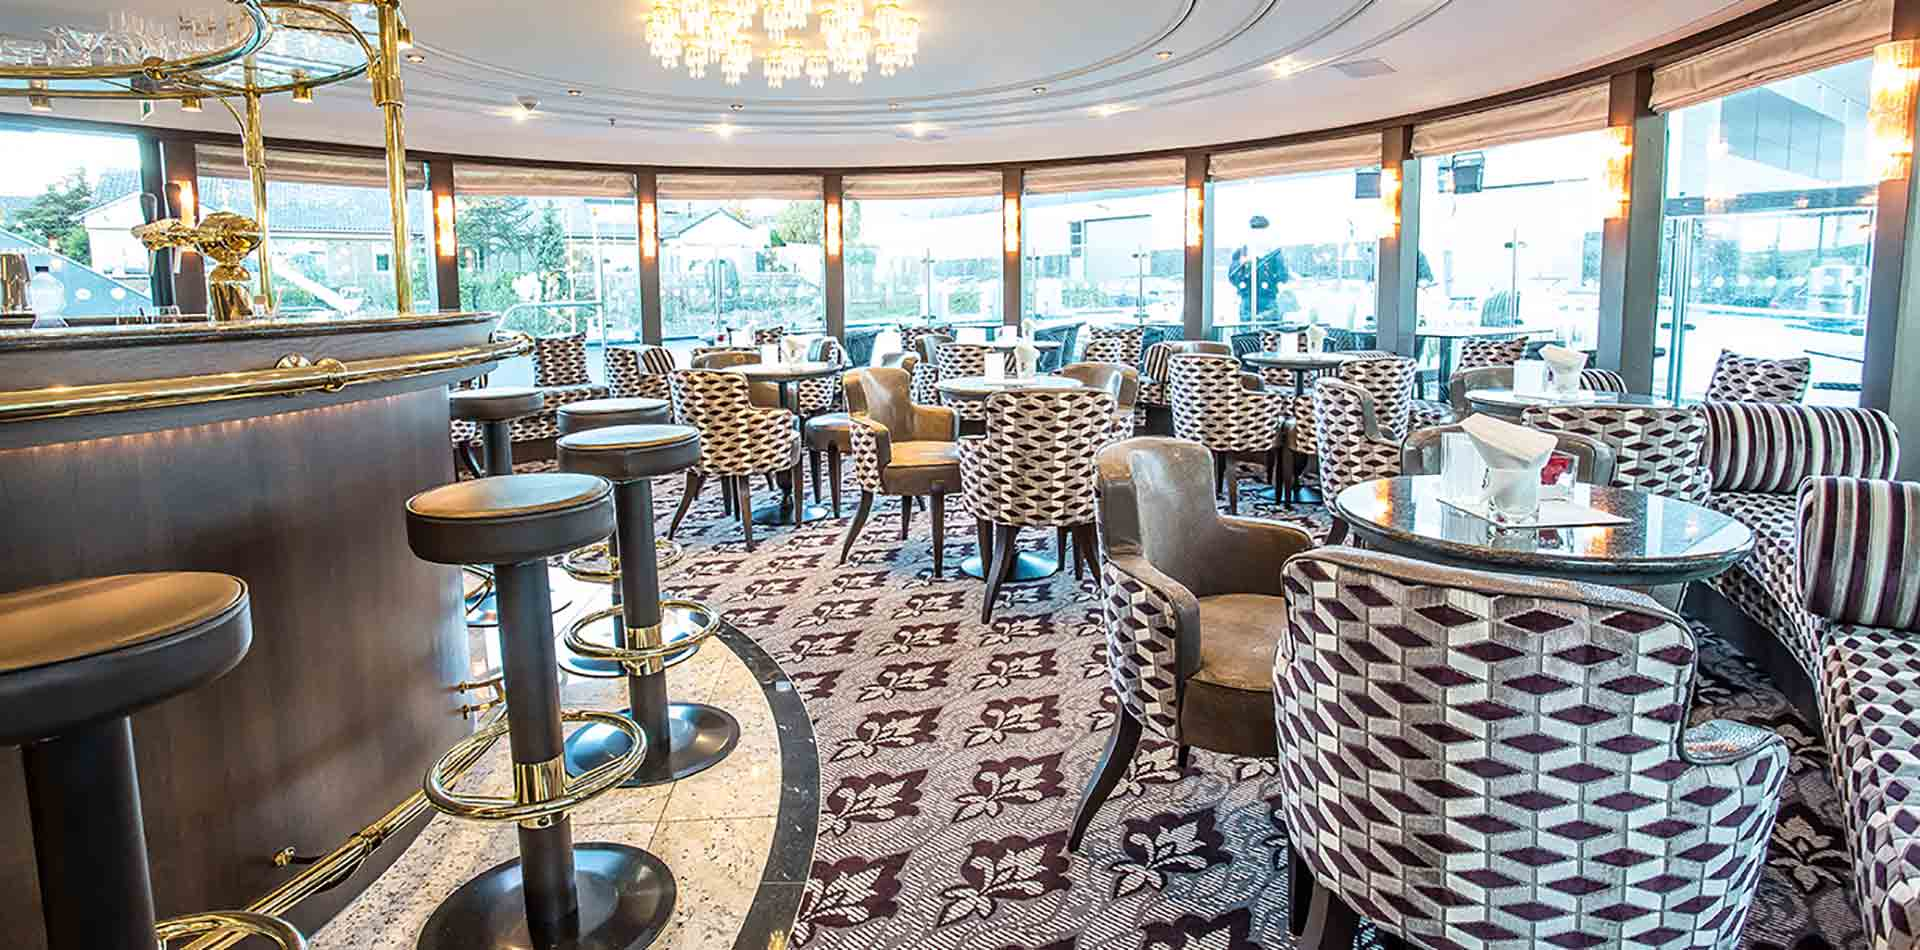 Europe River Cruising on the Danube beautiful dining room on Thomas Hardy cruise ship- luxury vacation destinations